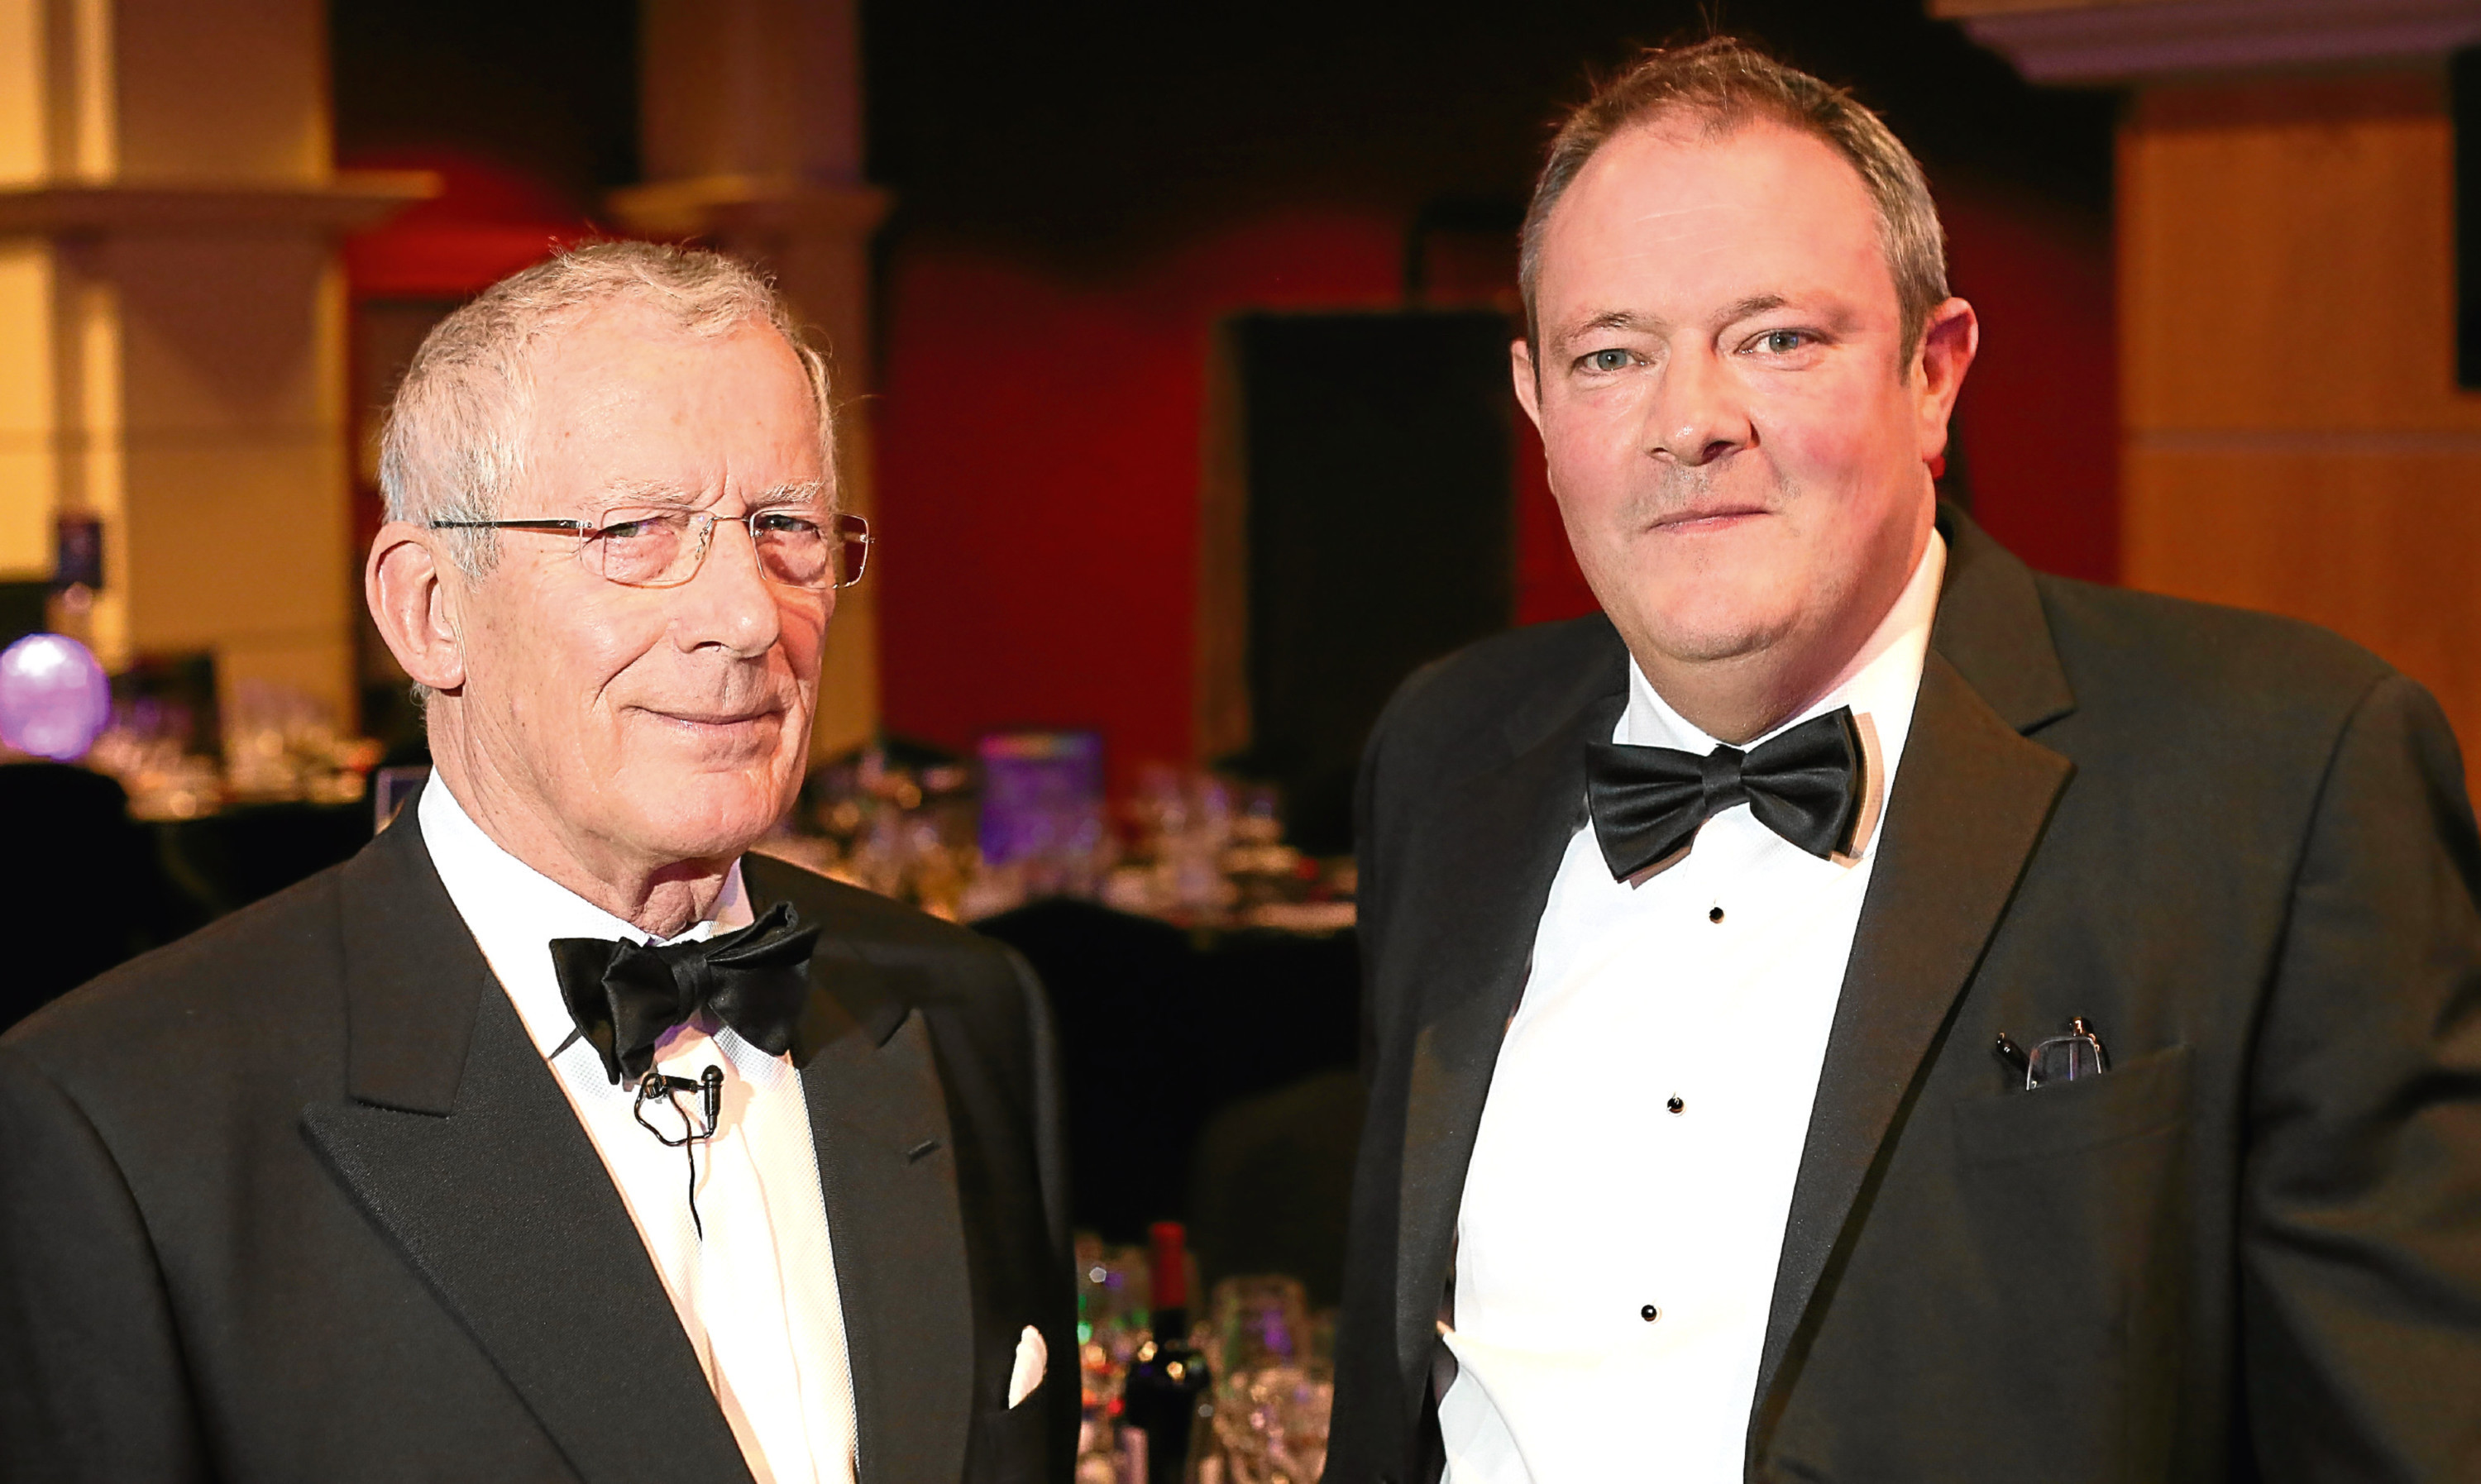 2015 Courier Business Awards host Nick Hewer with Courier Editor Richard Neville.